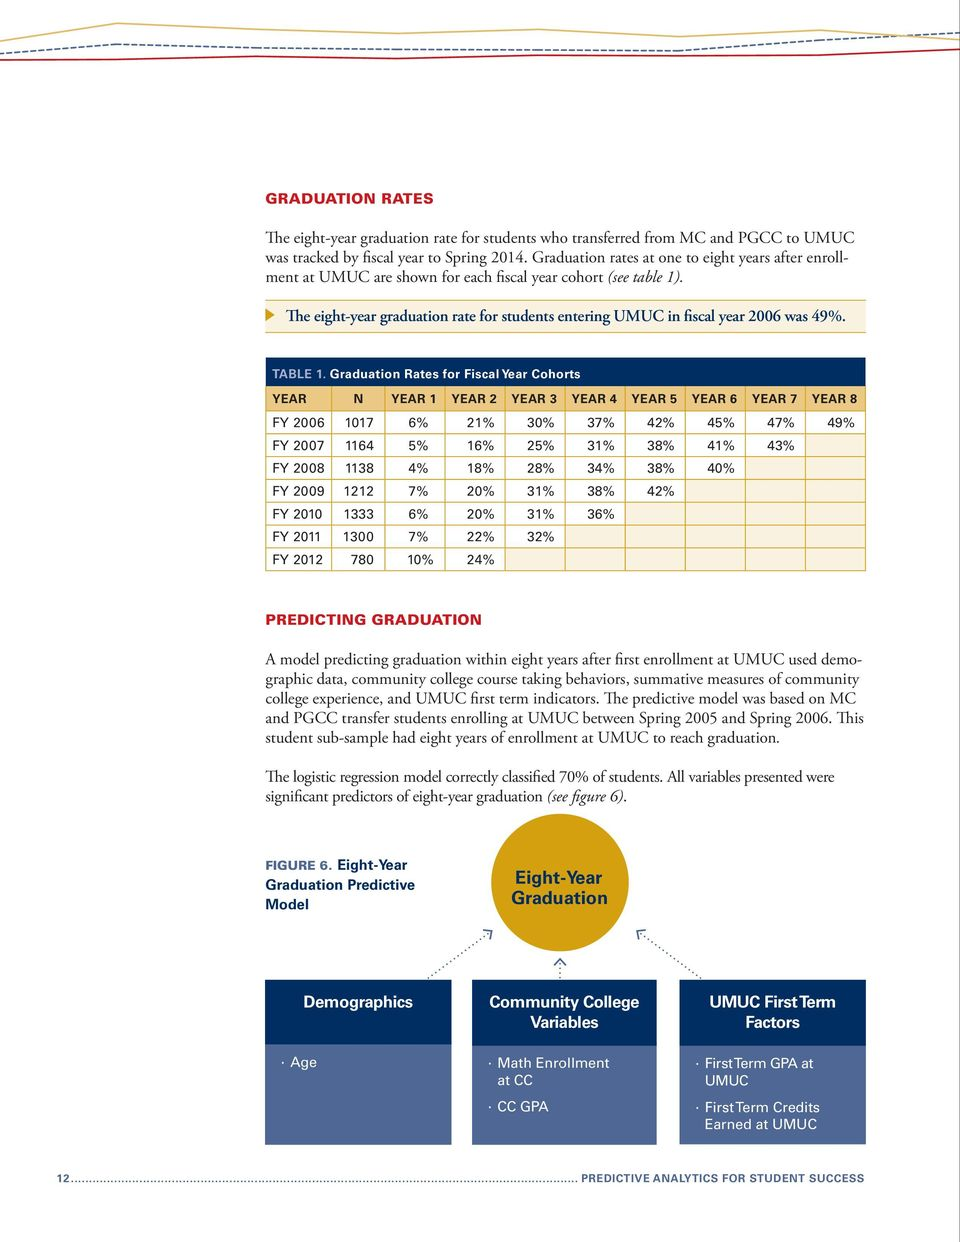 The eight-year graduation rate for students entering UMUC in fiscal year 2006 was 49%. TABLE 1.